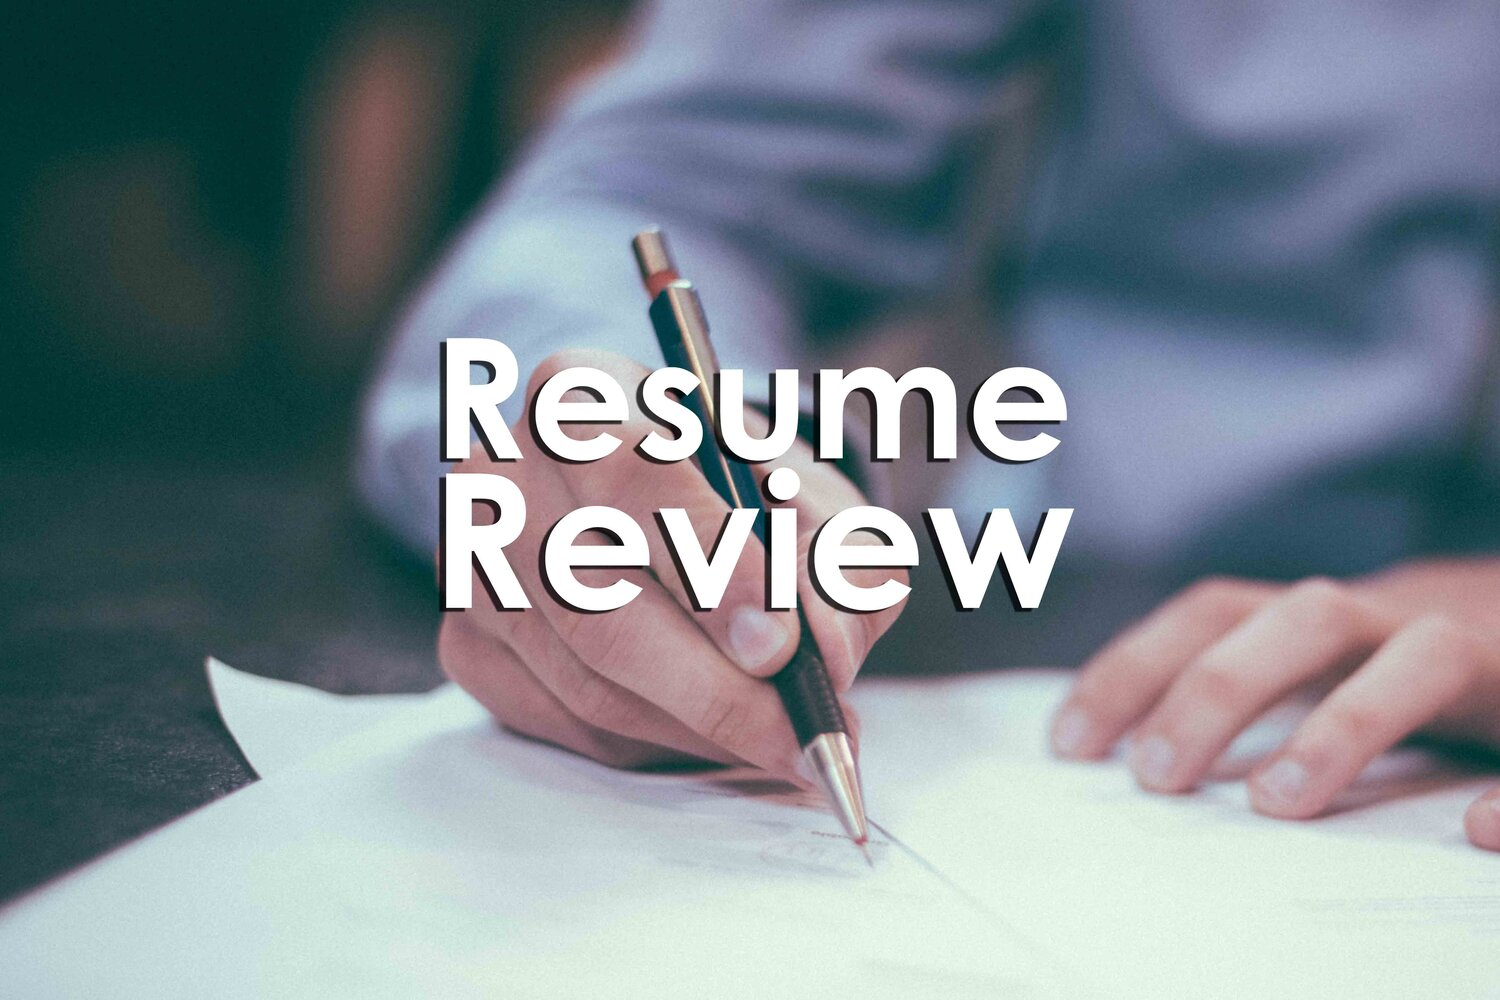 What Should I Ask For When I Want Someone To Review My Resume